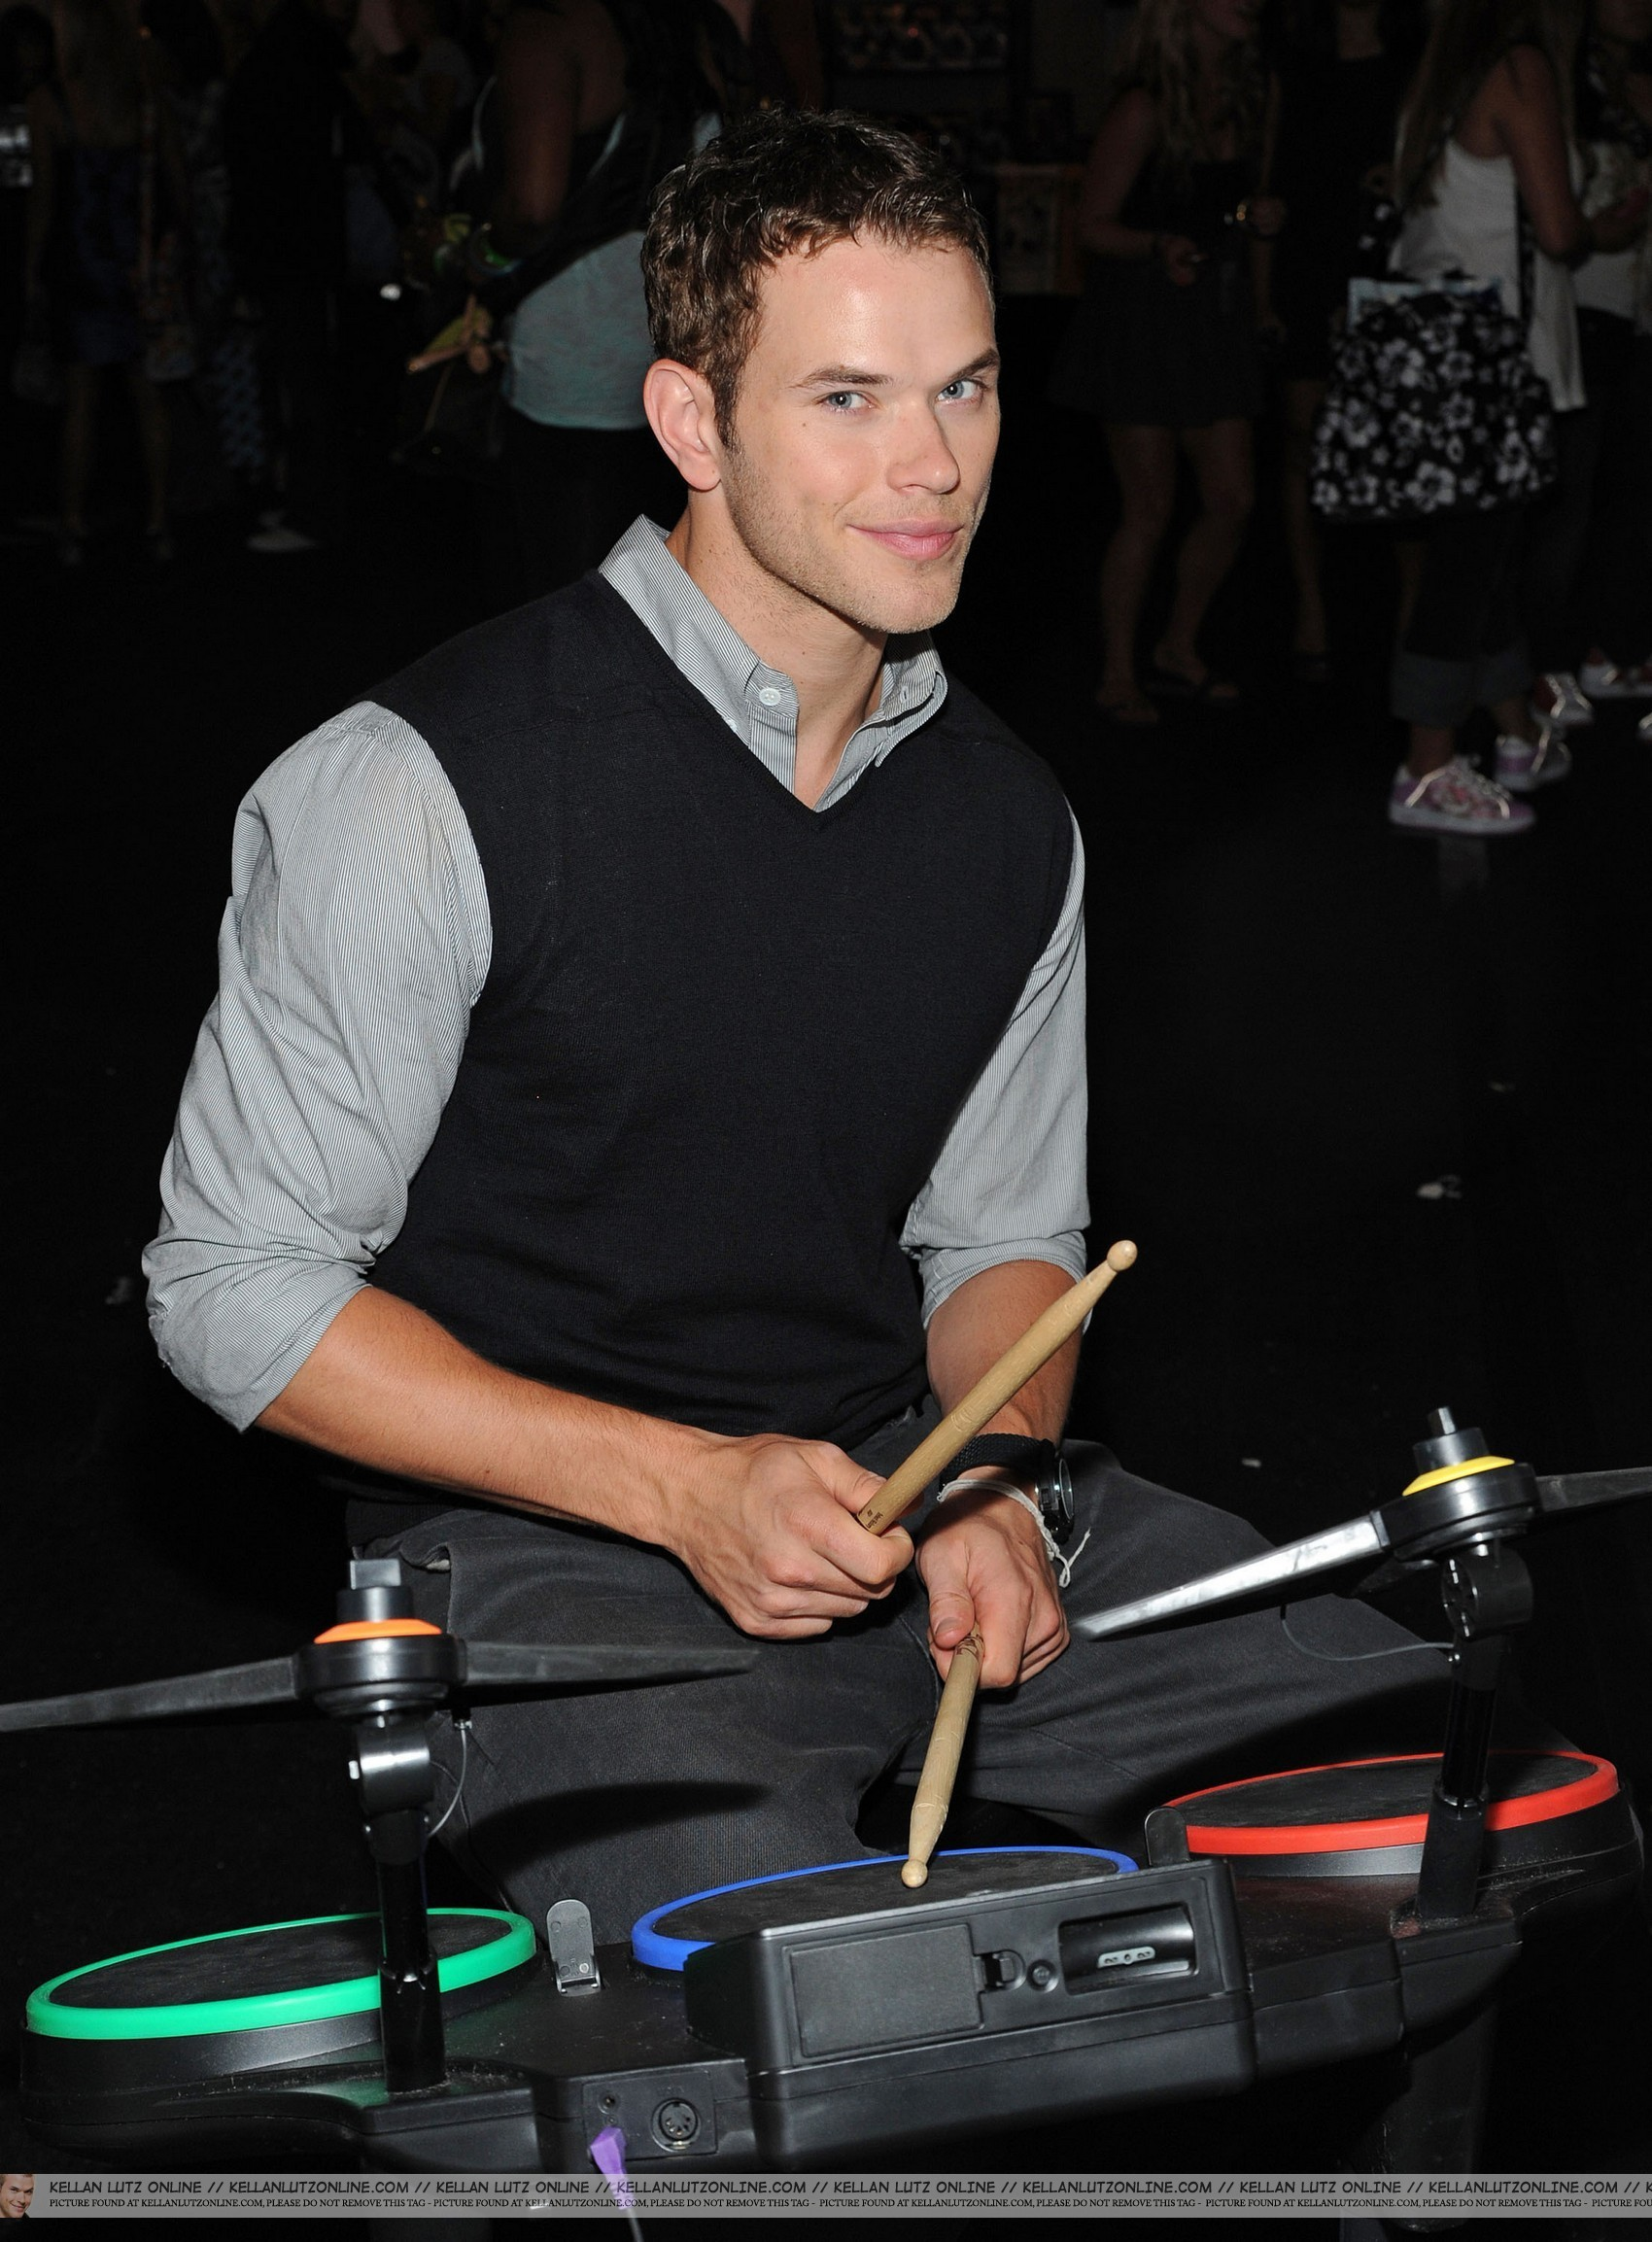 HQ Kellan backstage at the Teen Choice Awards - I প্রণয় my teddy ভালুক ^.^